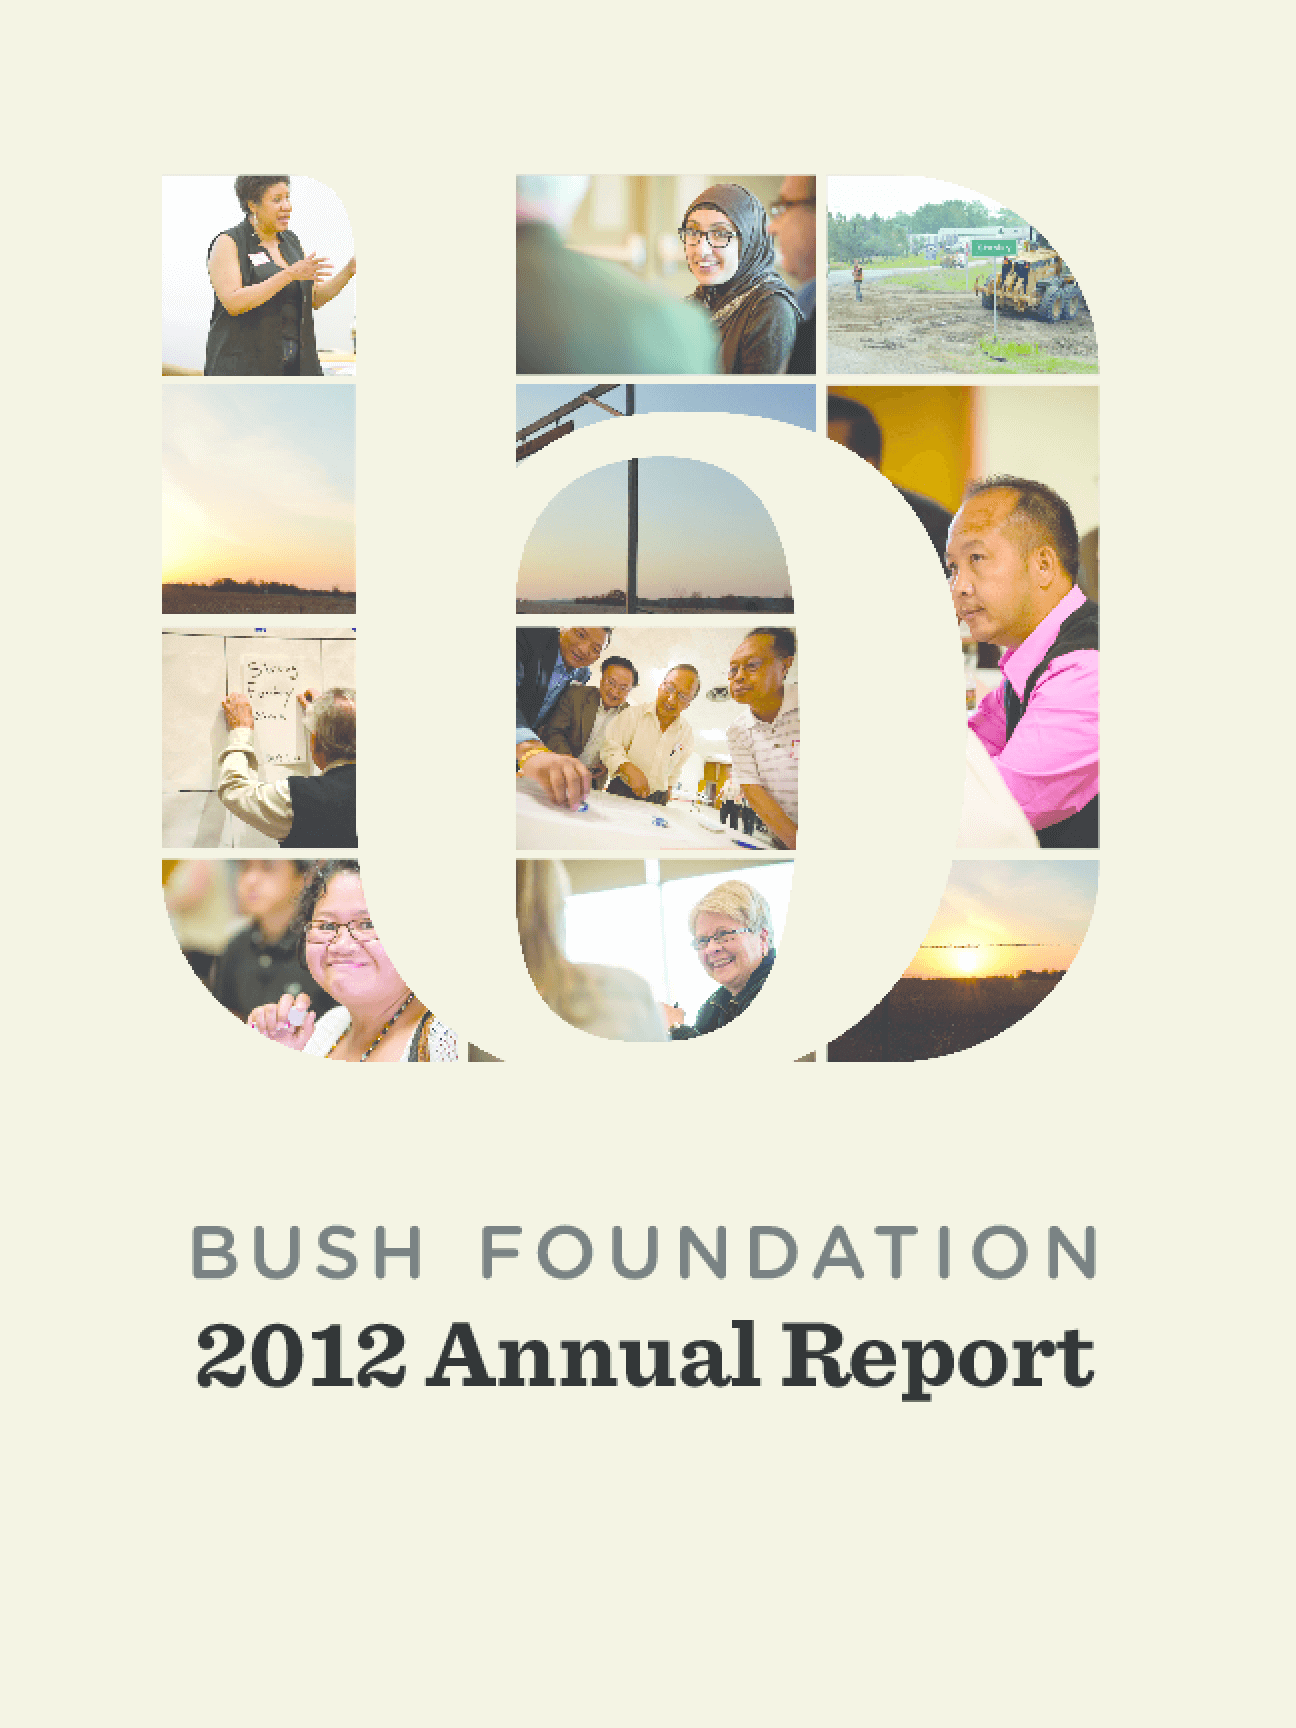 Bush Foundation 2012 Annual Report